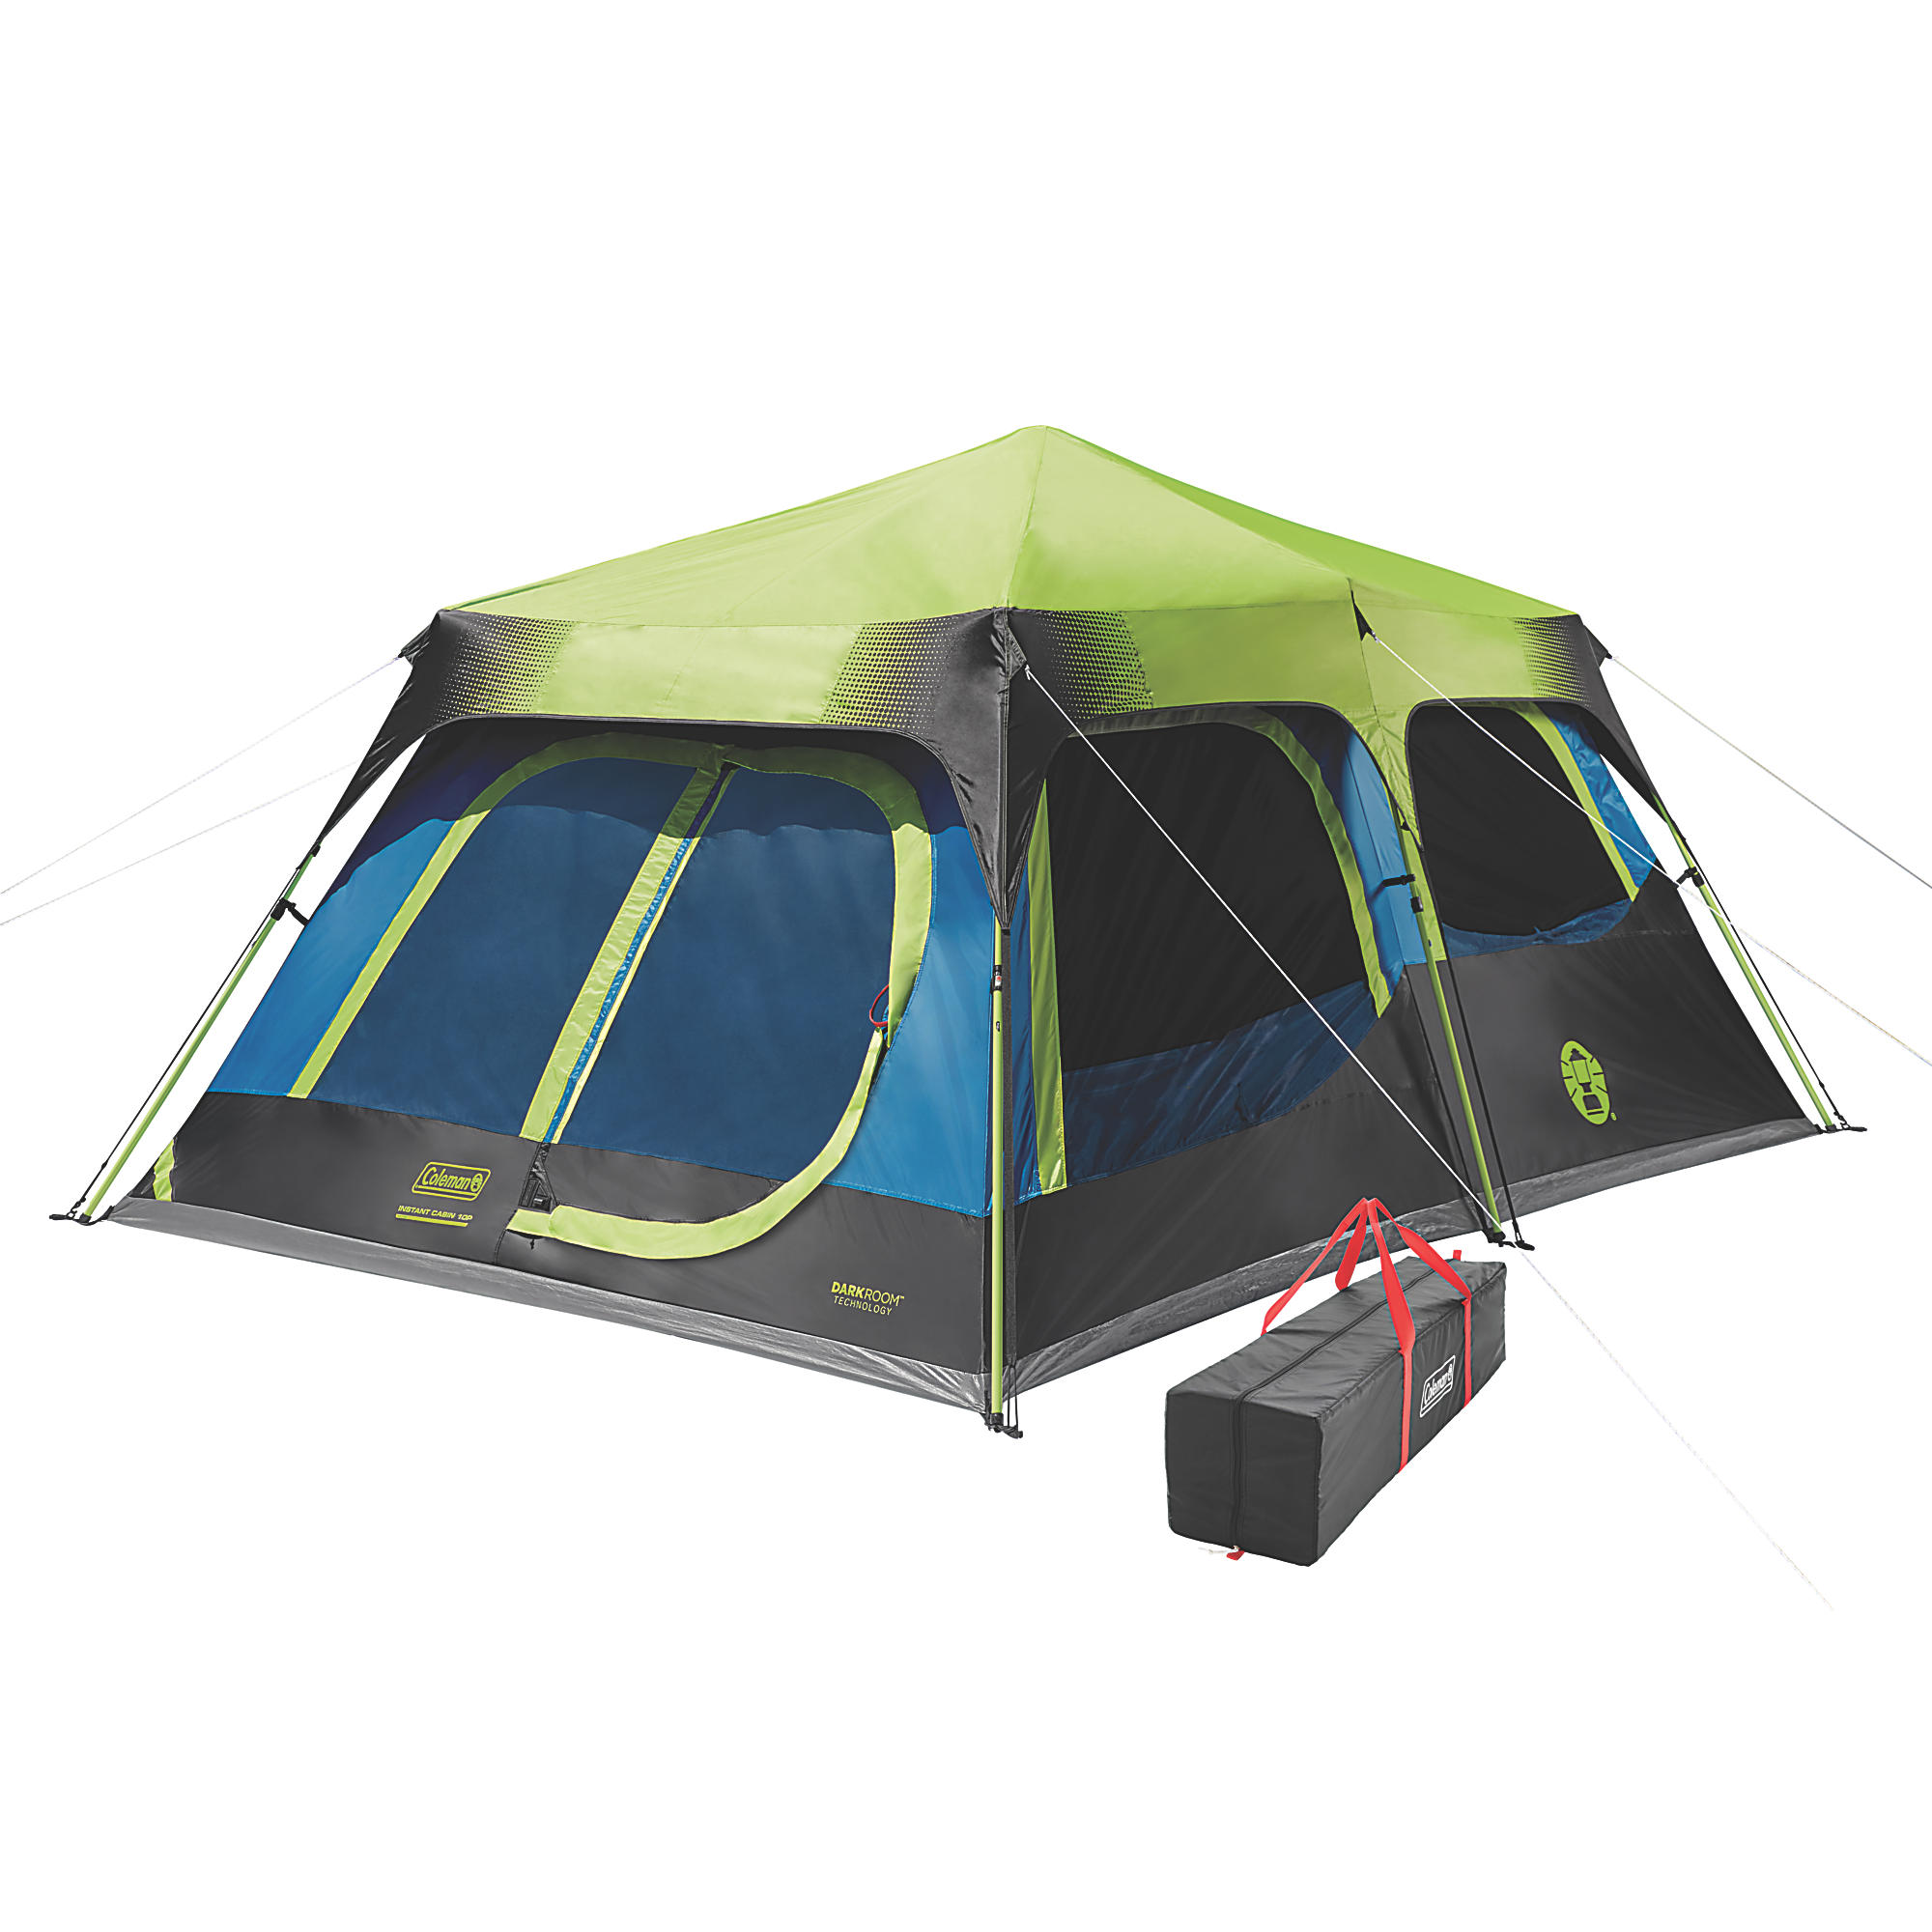 Coleman 10-Person Dark Room Instant Cabin Tent with Rainfly by Newell Brands